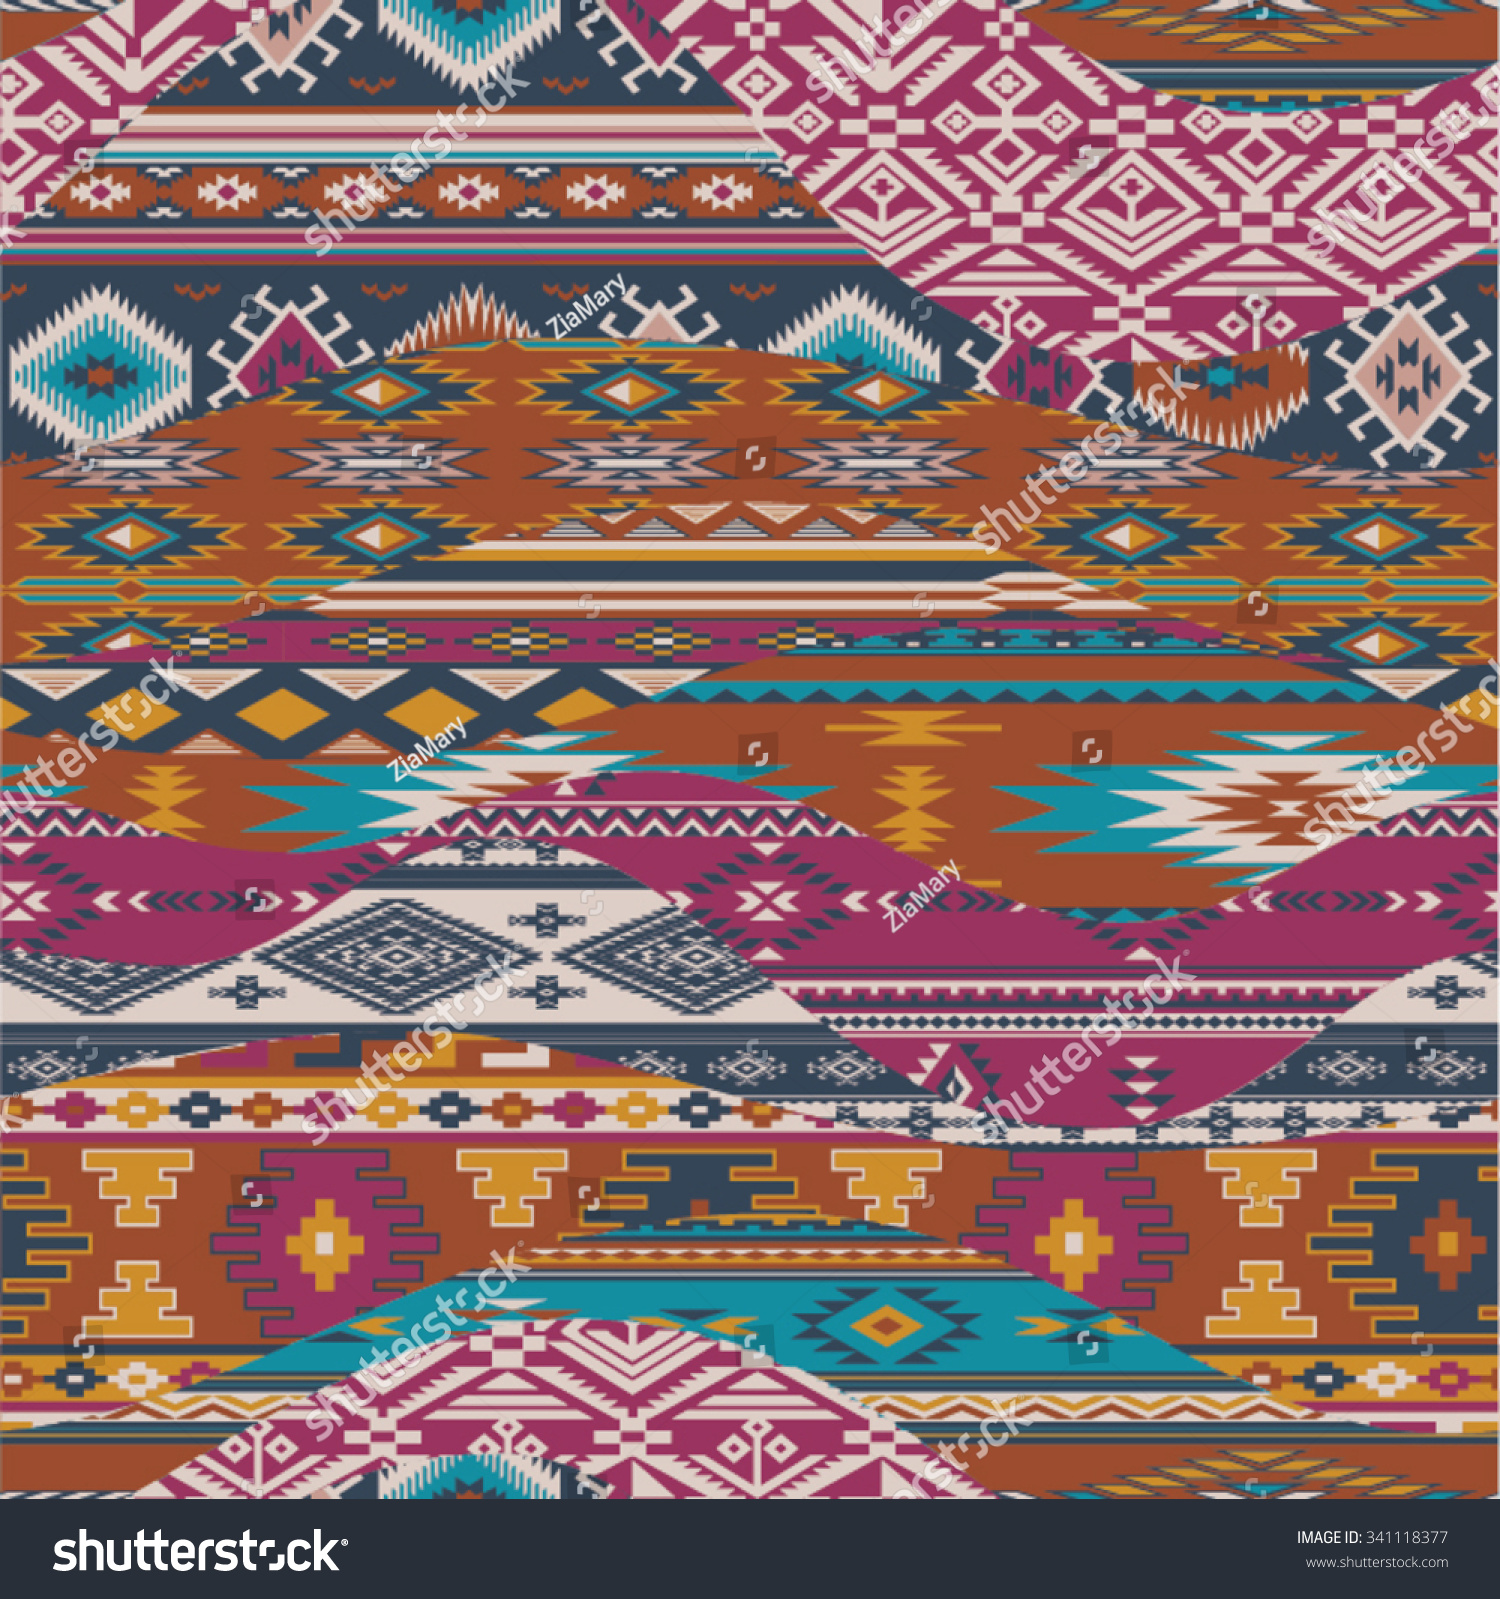 Native American Waves Patchwork Vector Seamless Patterns